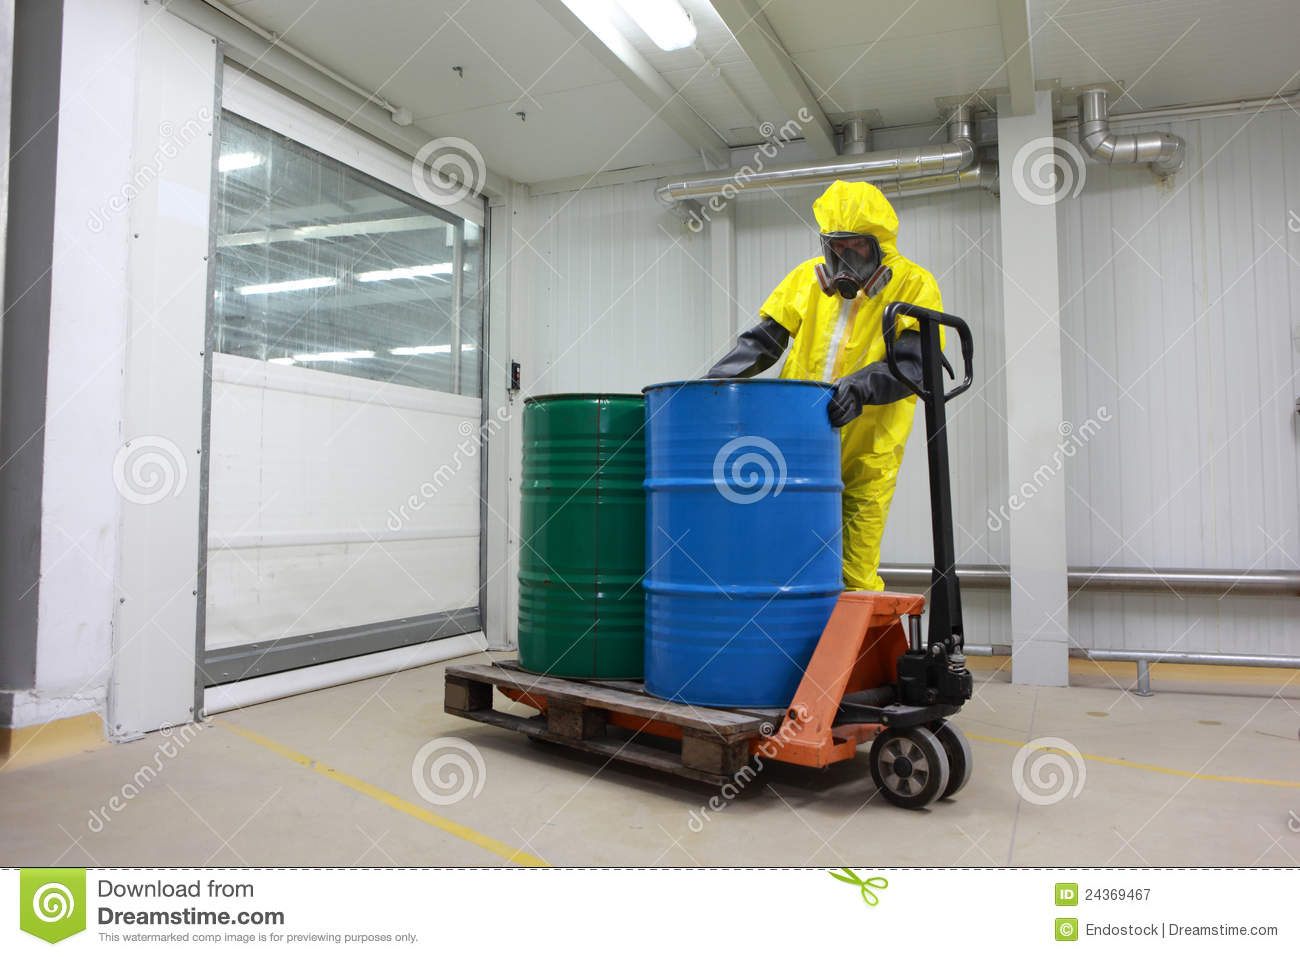 Technician working with toxic substance